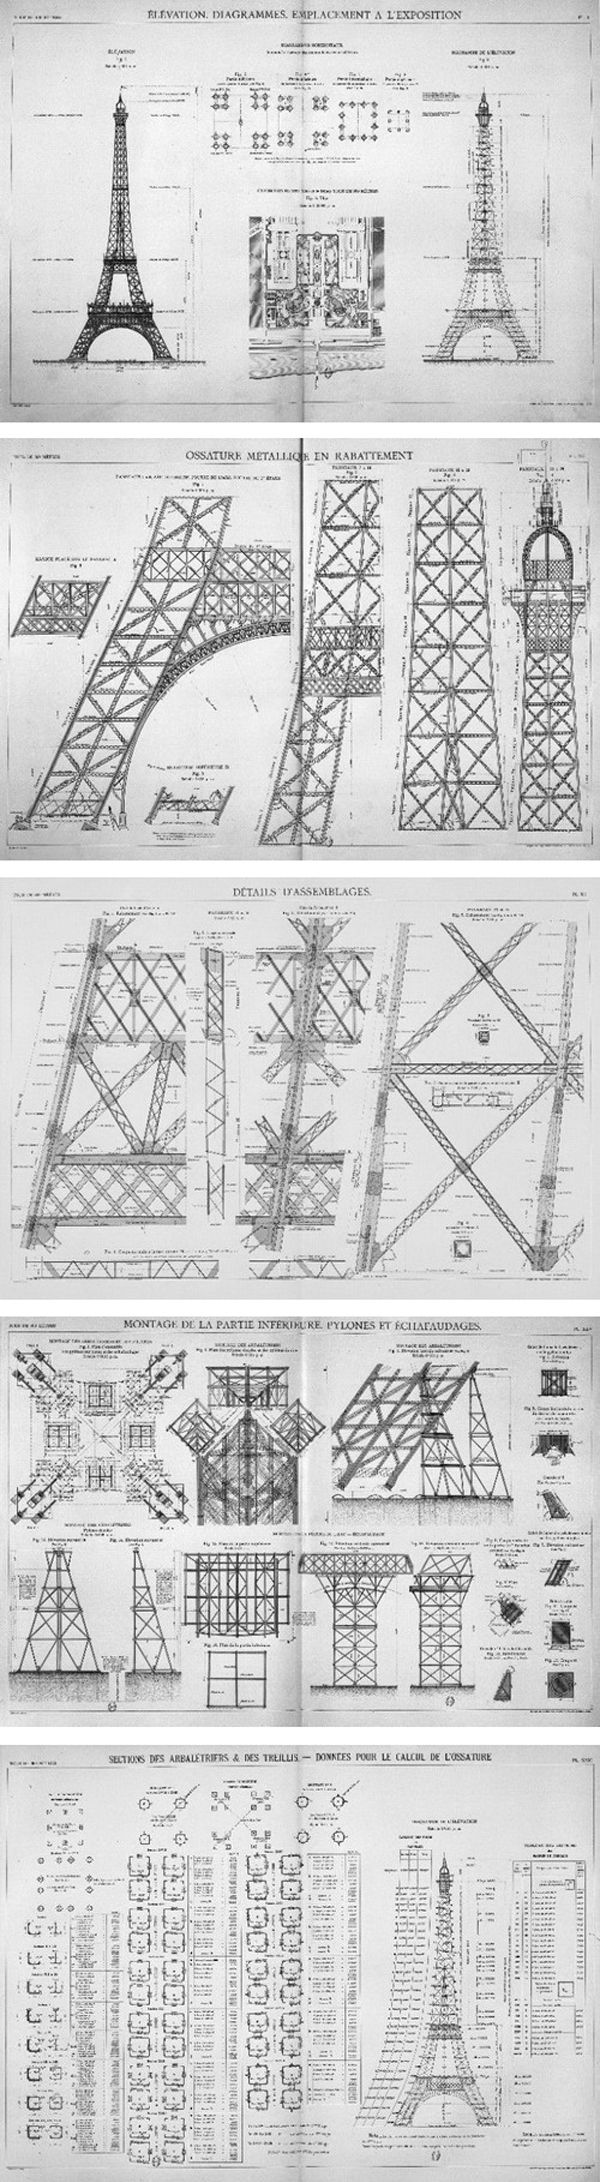 Blueprints for the eiffel tower named after the engineer gustave blueprints for the eiffel tower named after the engineer gustave eiffel whose company designed malvernweather